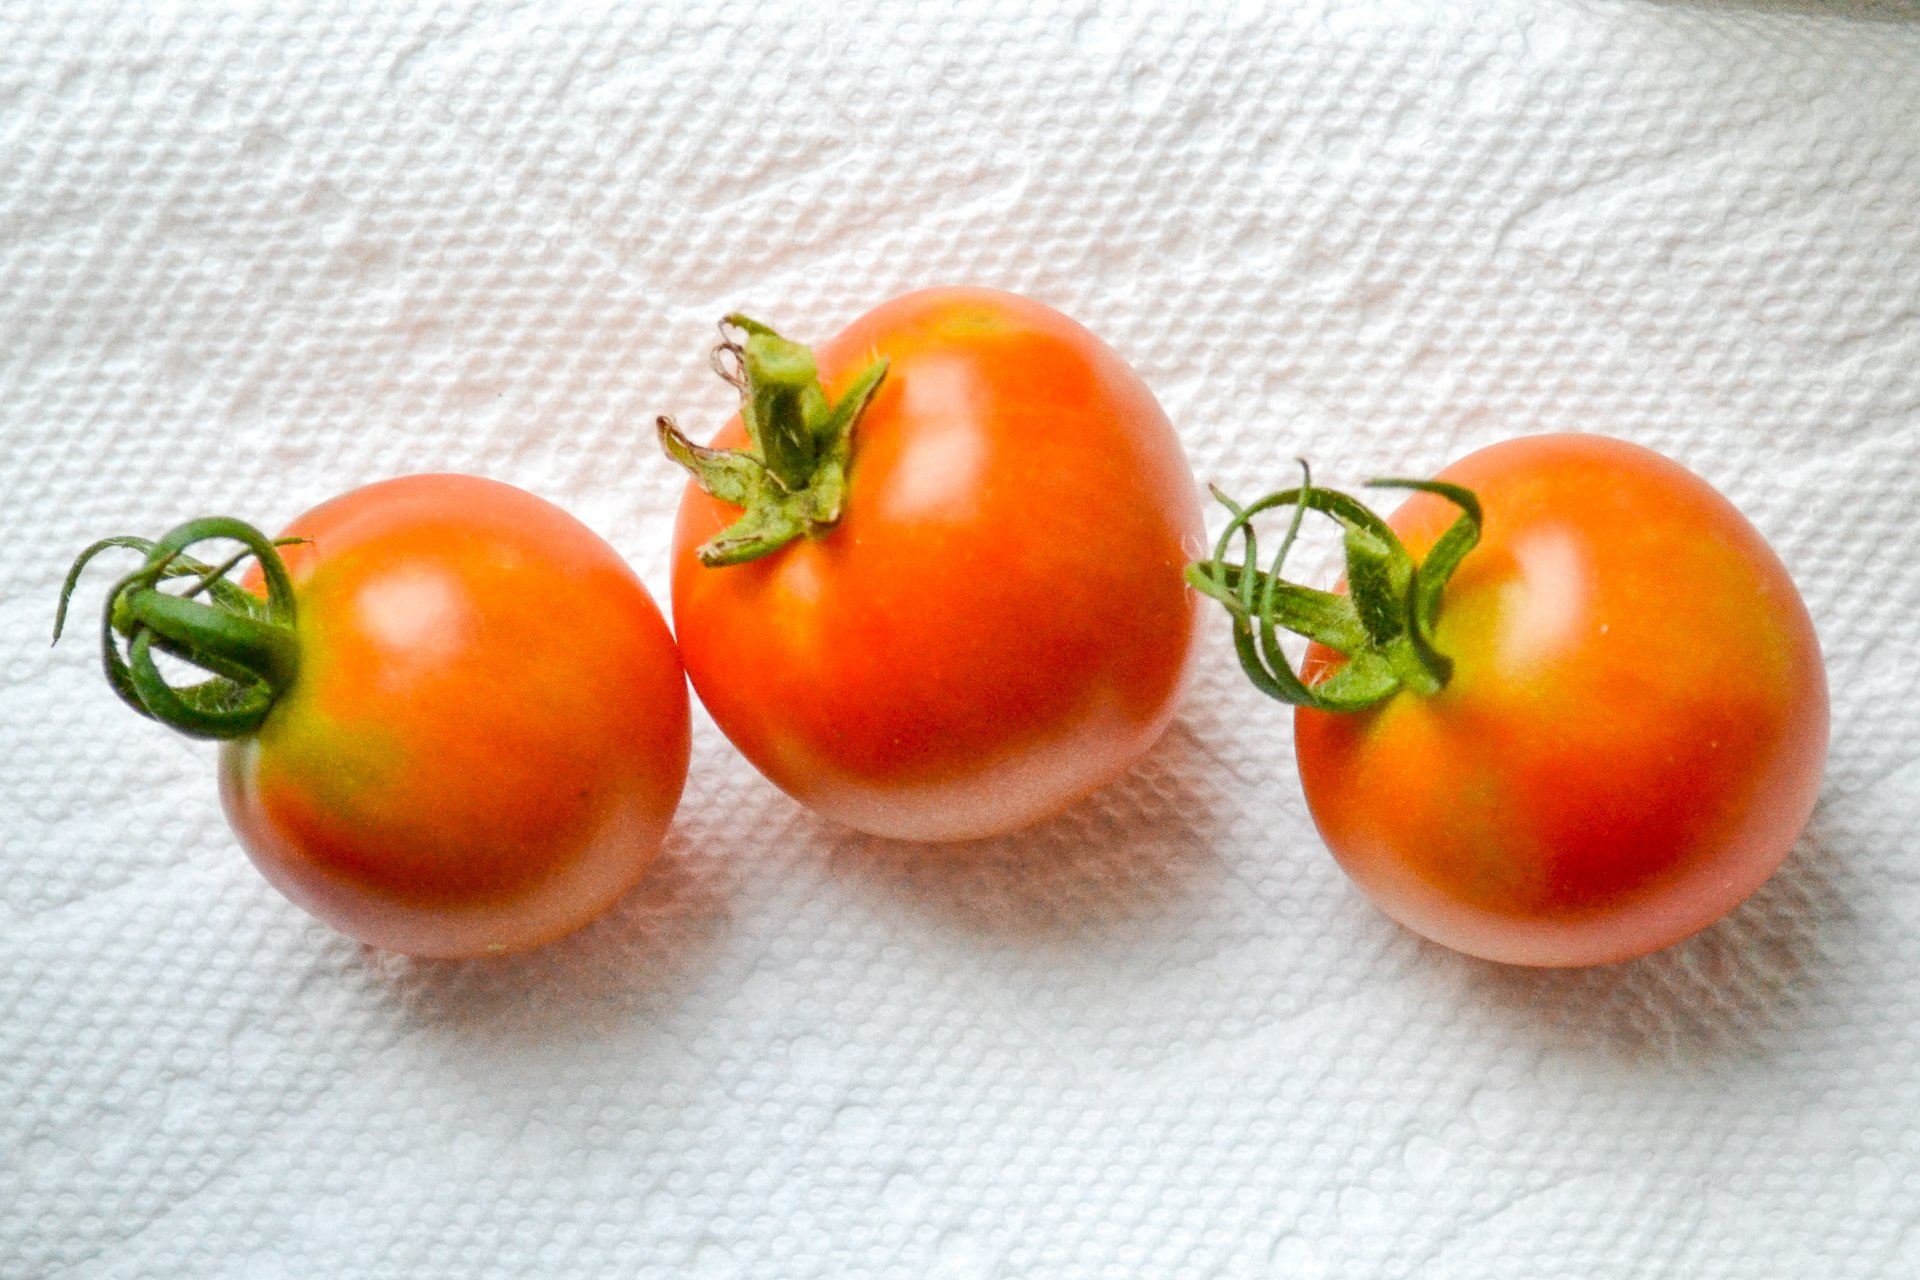 laying out tomatoes on windowsill to ripen